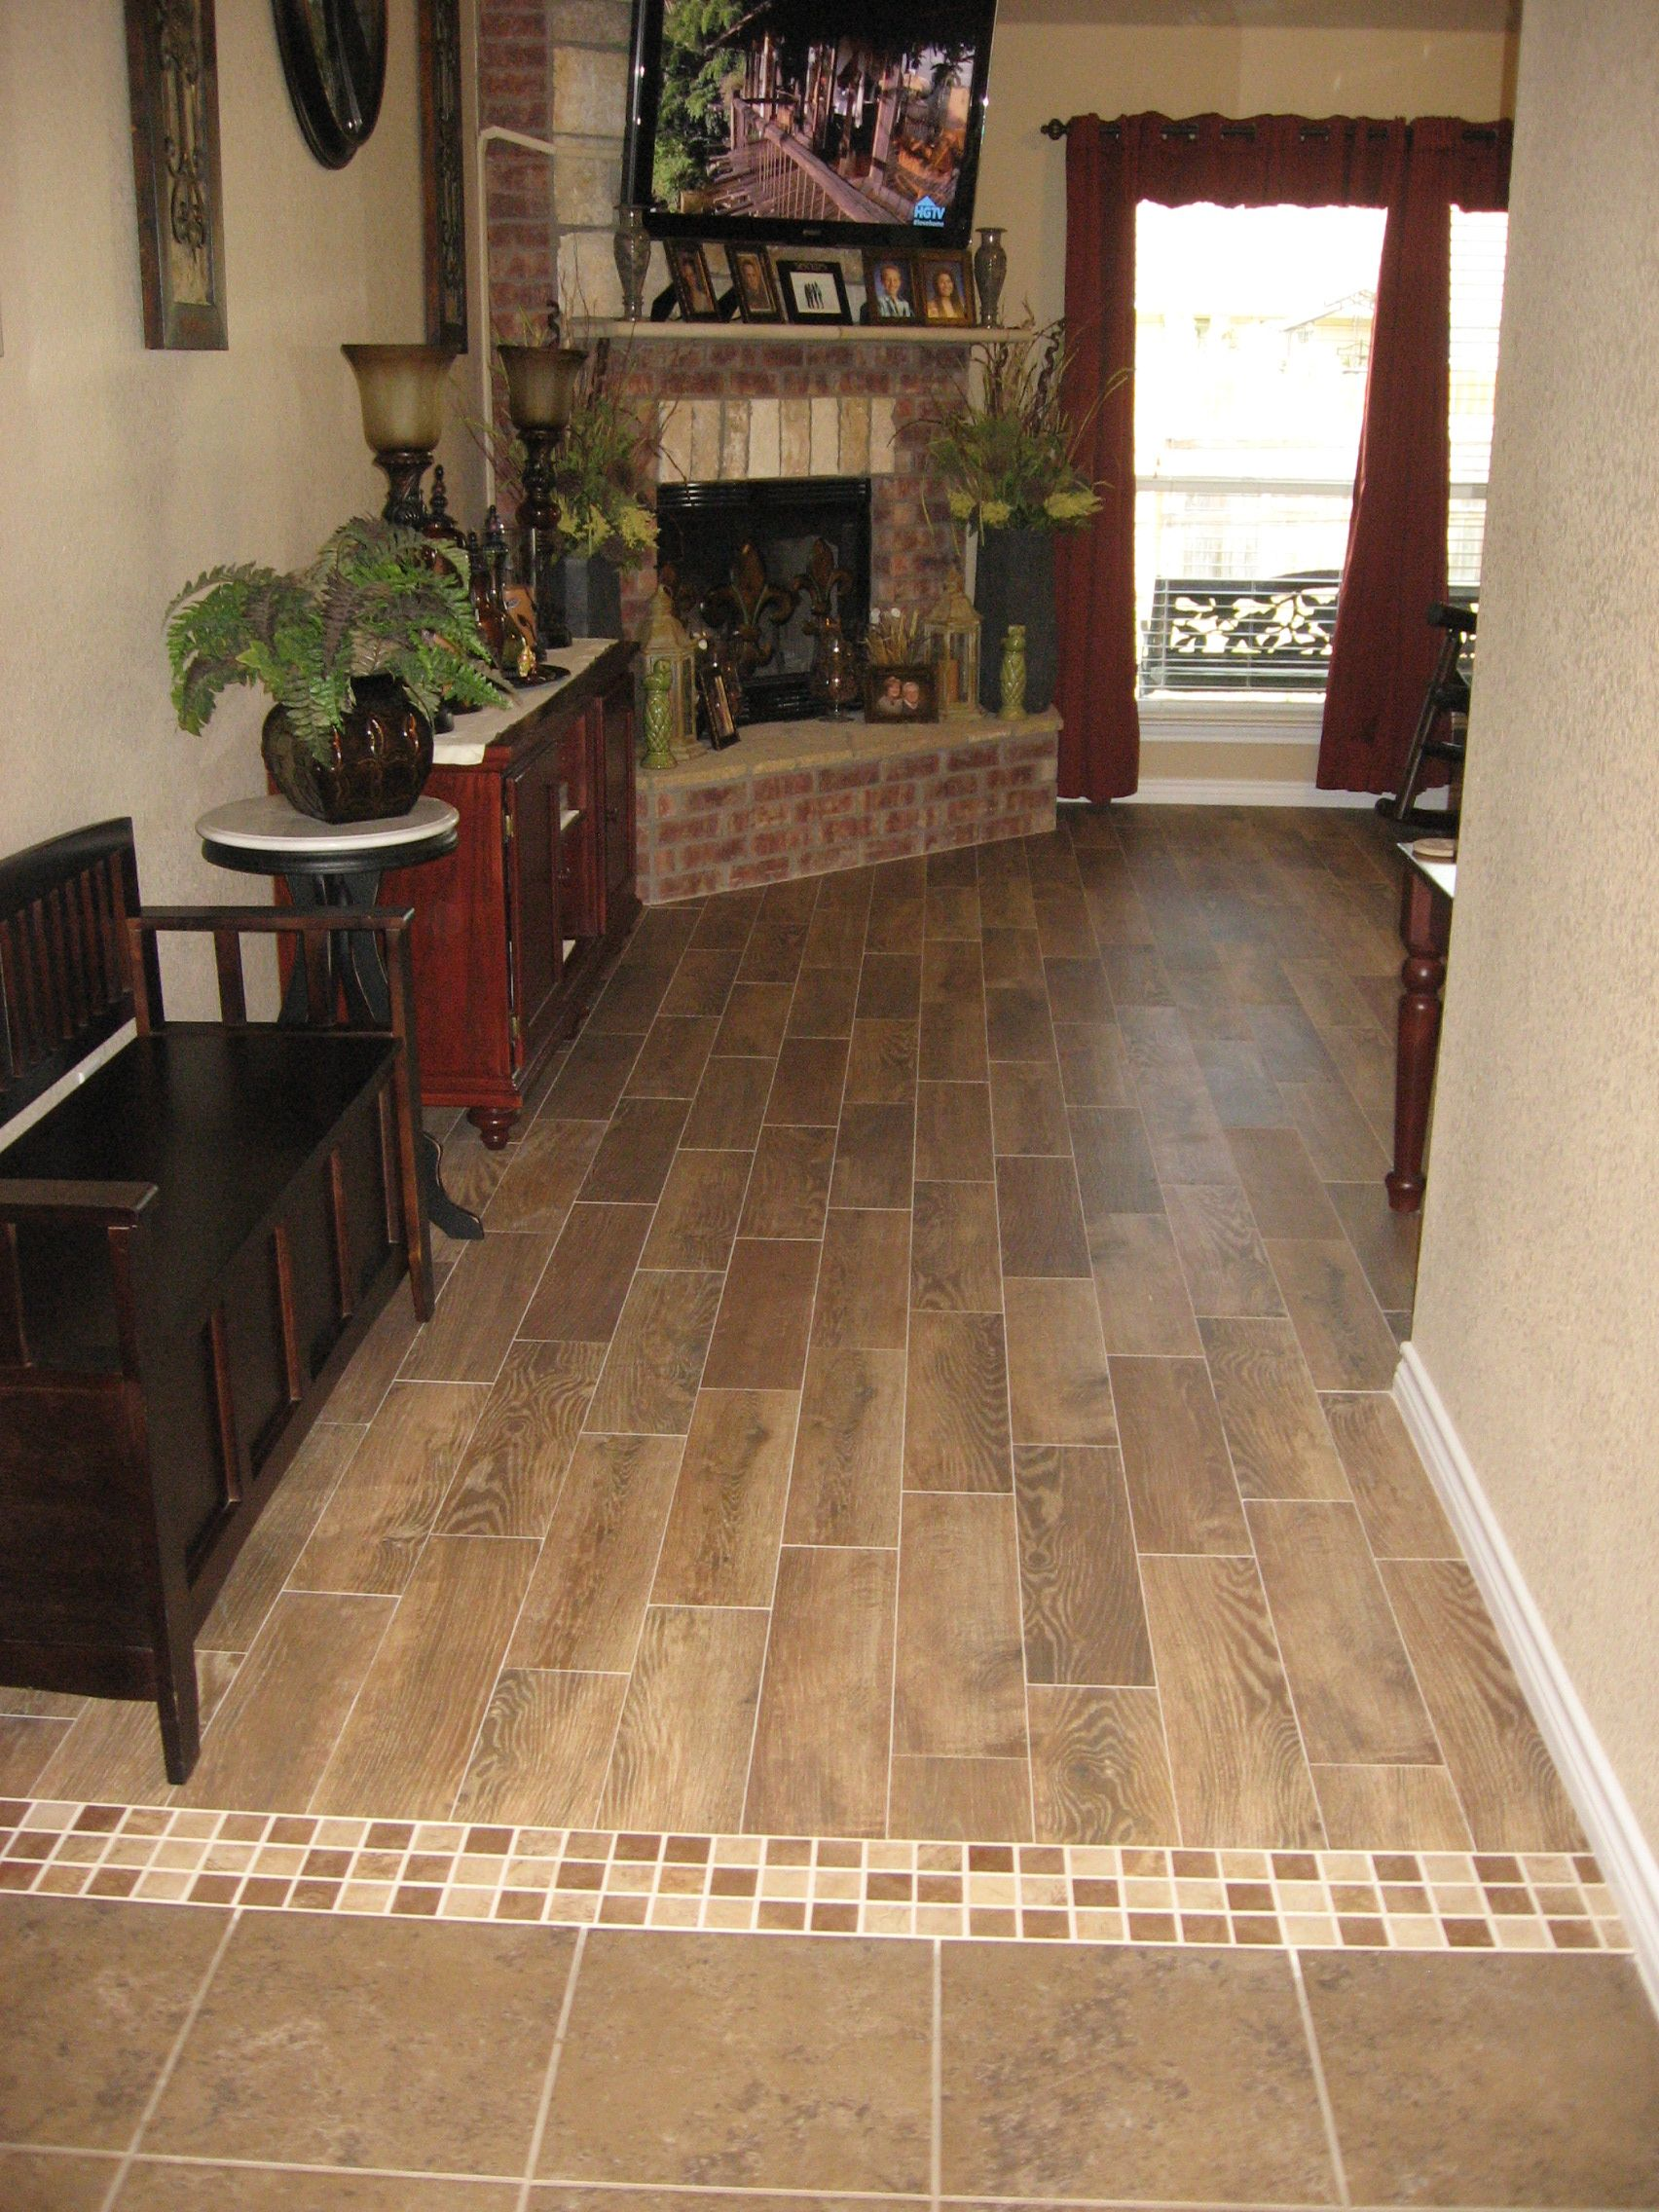 Ceramic Tile Floors For Kitchens Transition With Wood Plank Tile Floors Pinterest Mosaics